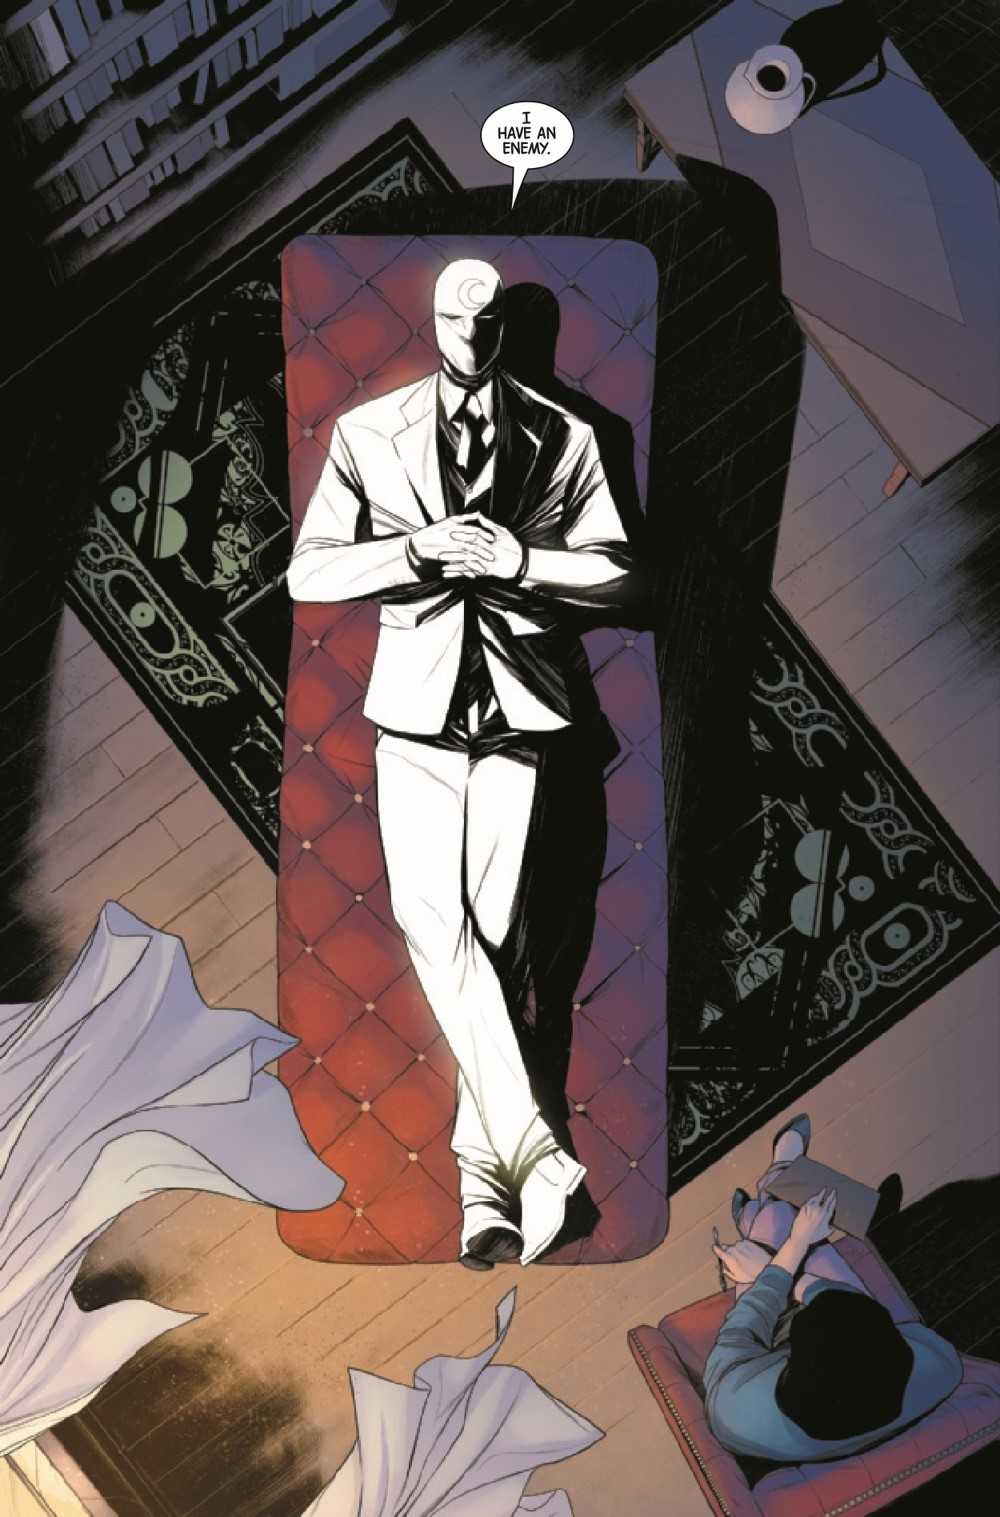 MOONKN2021003_Preview-3 ComicList Previews: MOON KNIGHT #3